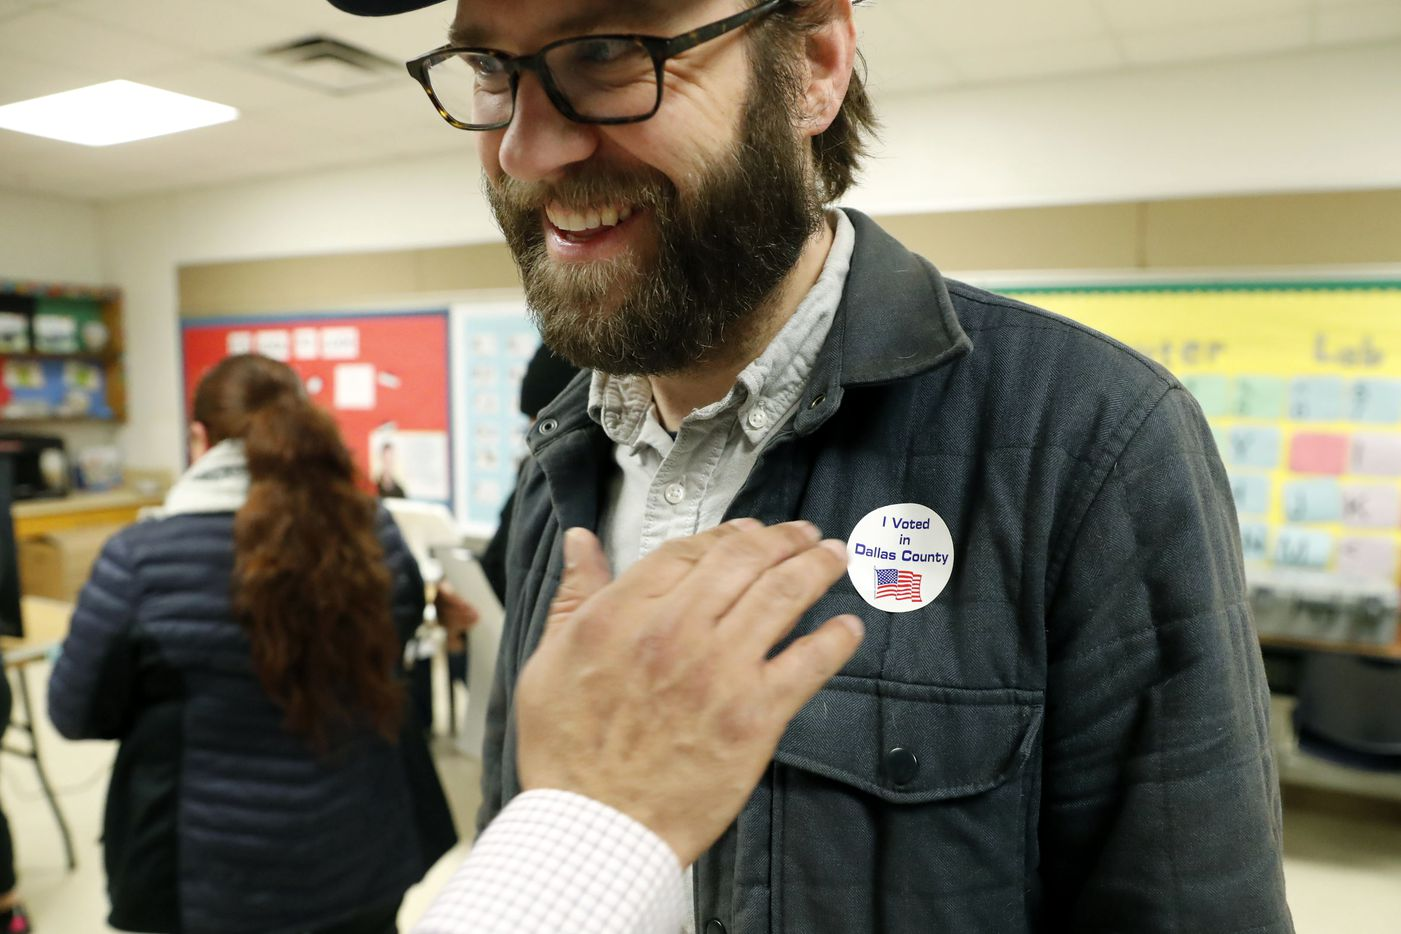 Democrat Jamie Wilson gets a sticker after voting in the Super Tuesday primary at John H. Reagan Elementary School in the Oak Cliff section of Dallas, Tuesday, March 3, 2020.